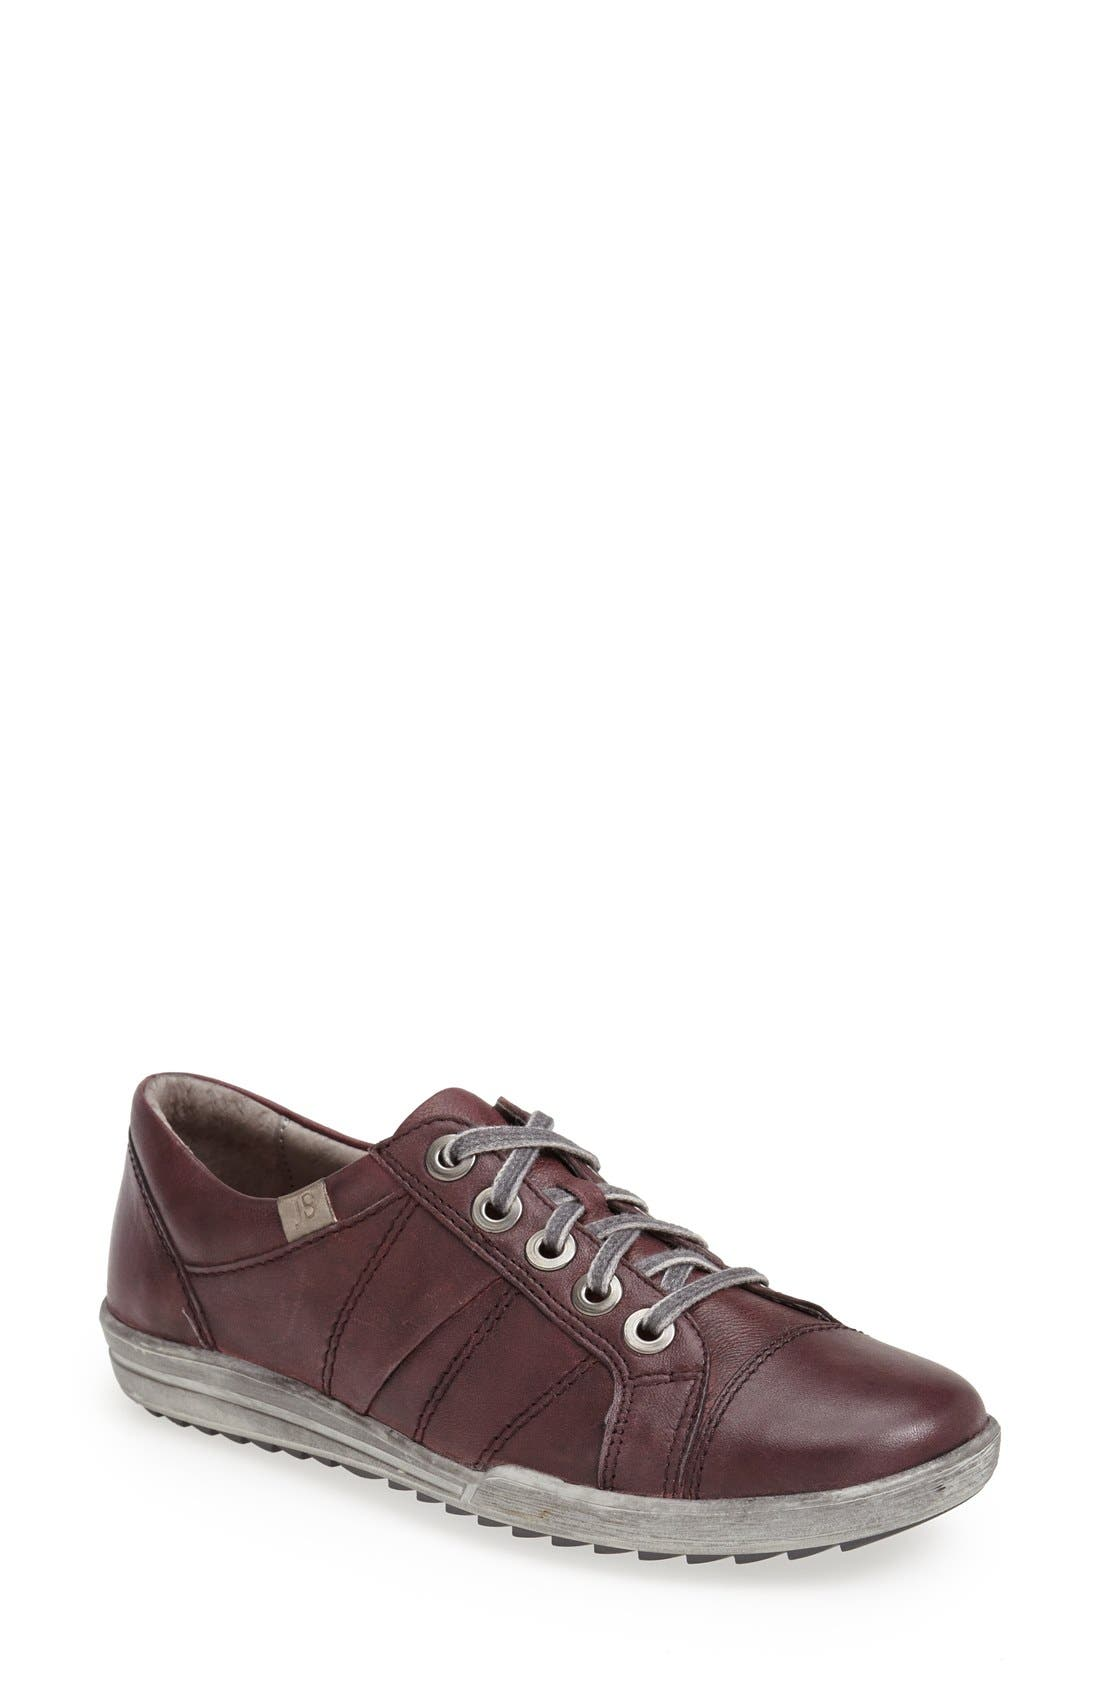 'Dany 05' Leather Sneaker,                             Main thumbnail 8, color,